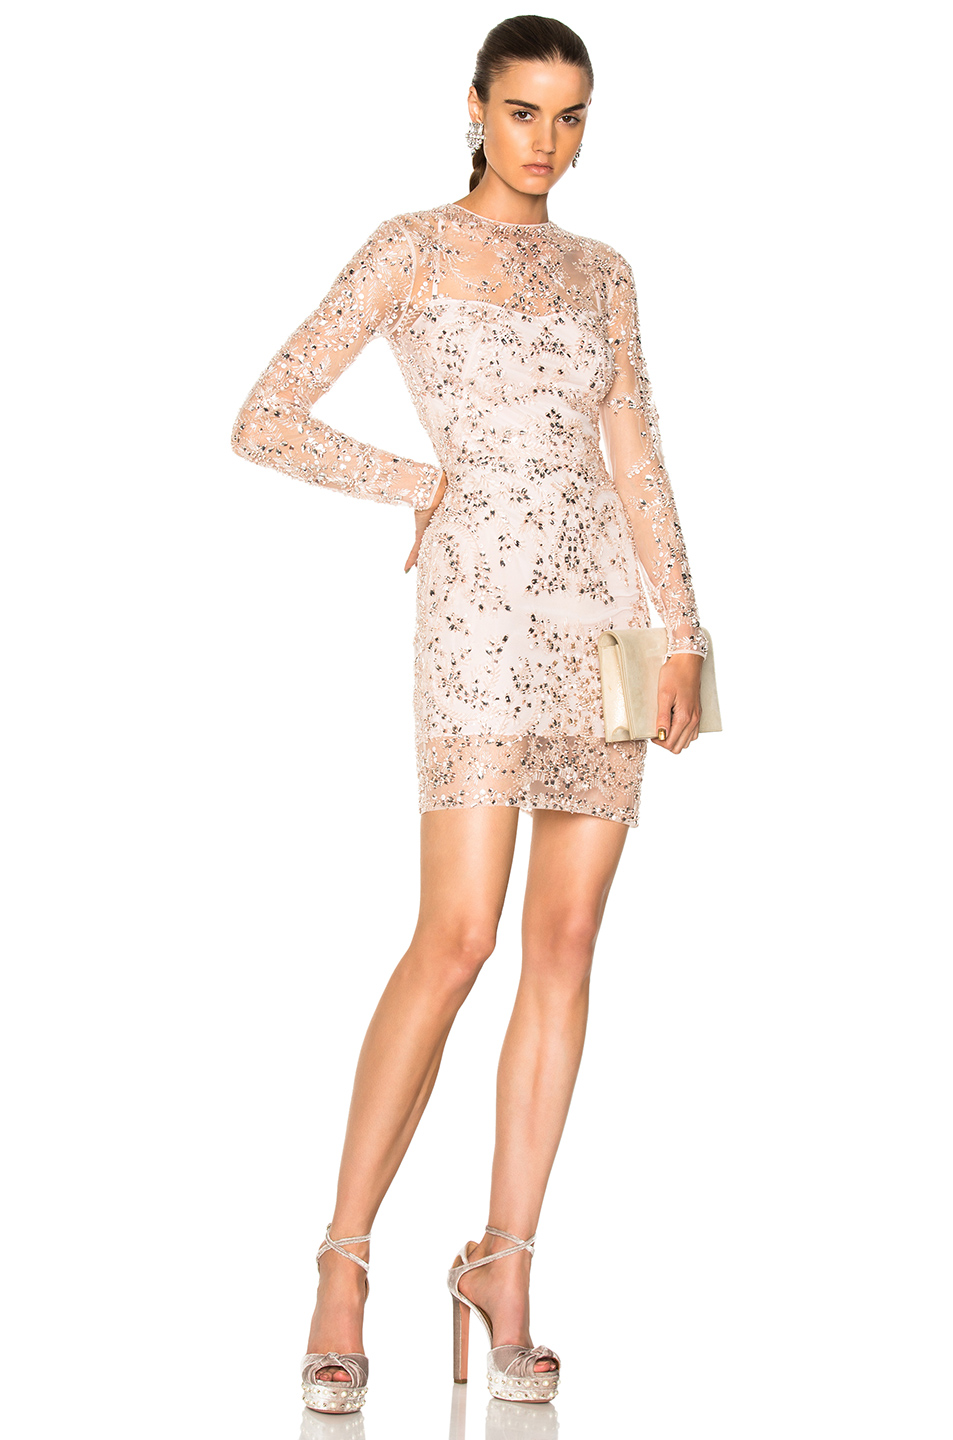 Zuhair Murad Beaded Mini Dress in Pink